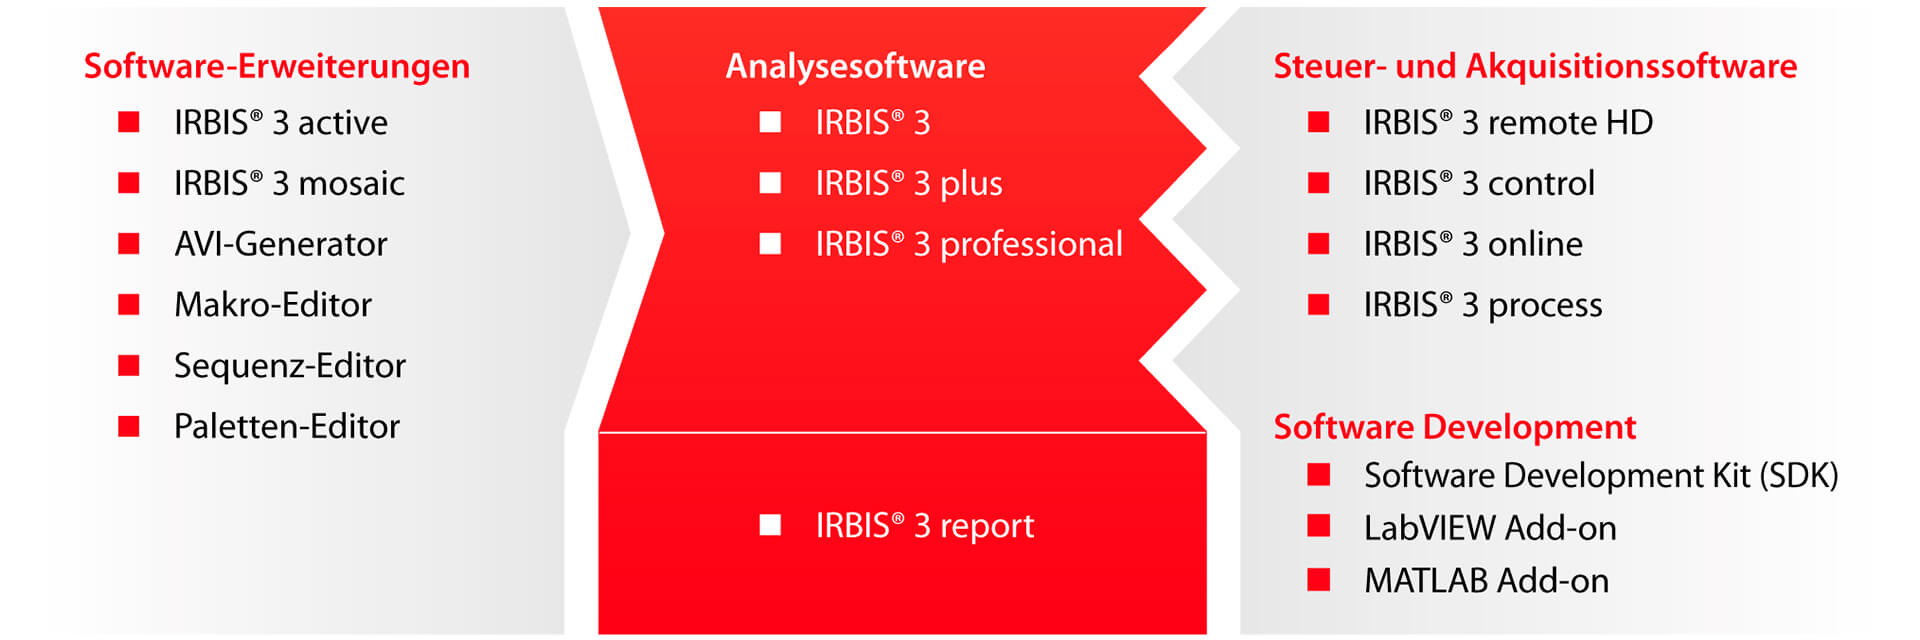 IRBIS® 3 Analyse-Software